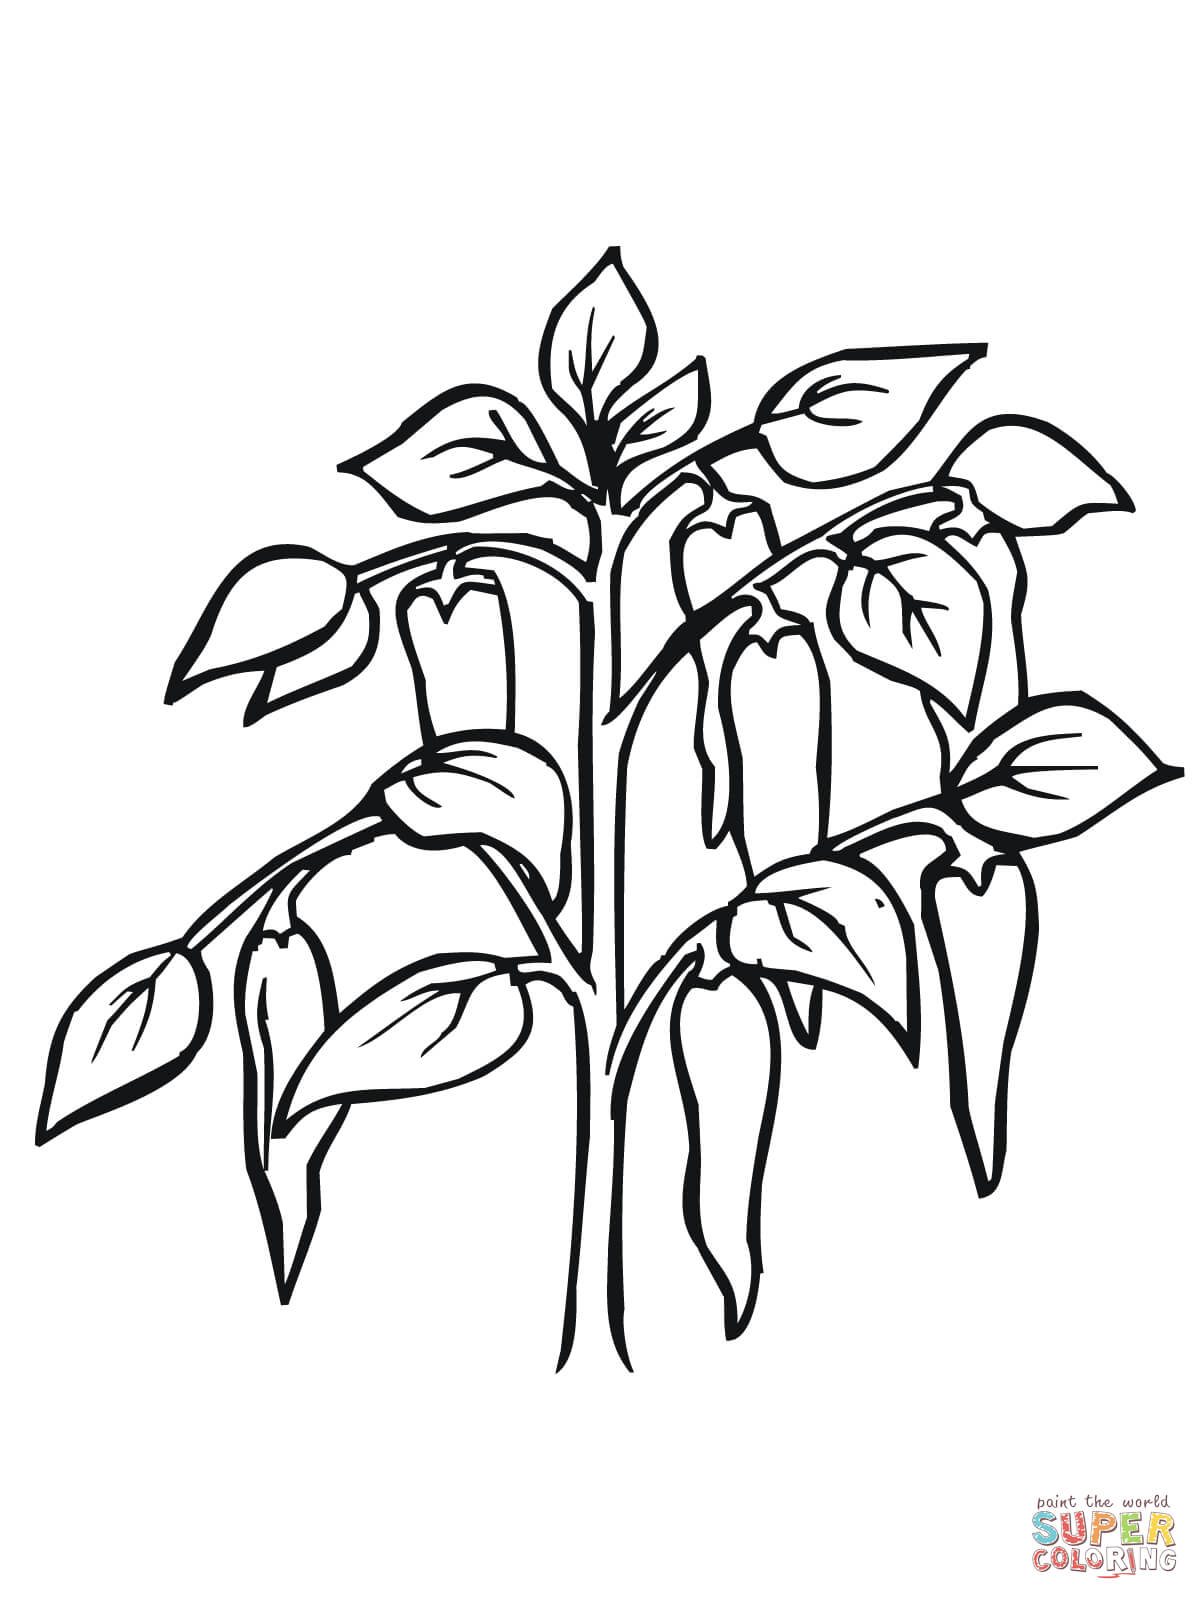 Chili Pepper Plant Coloring Online